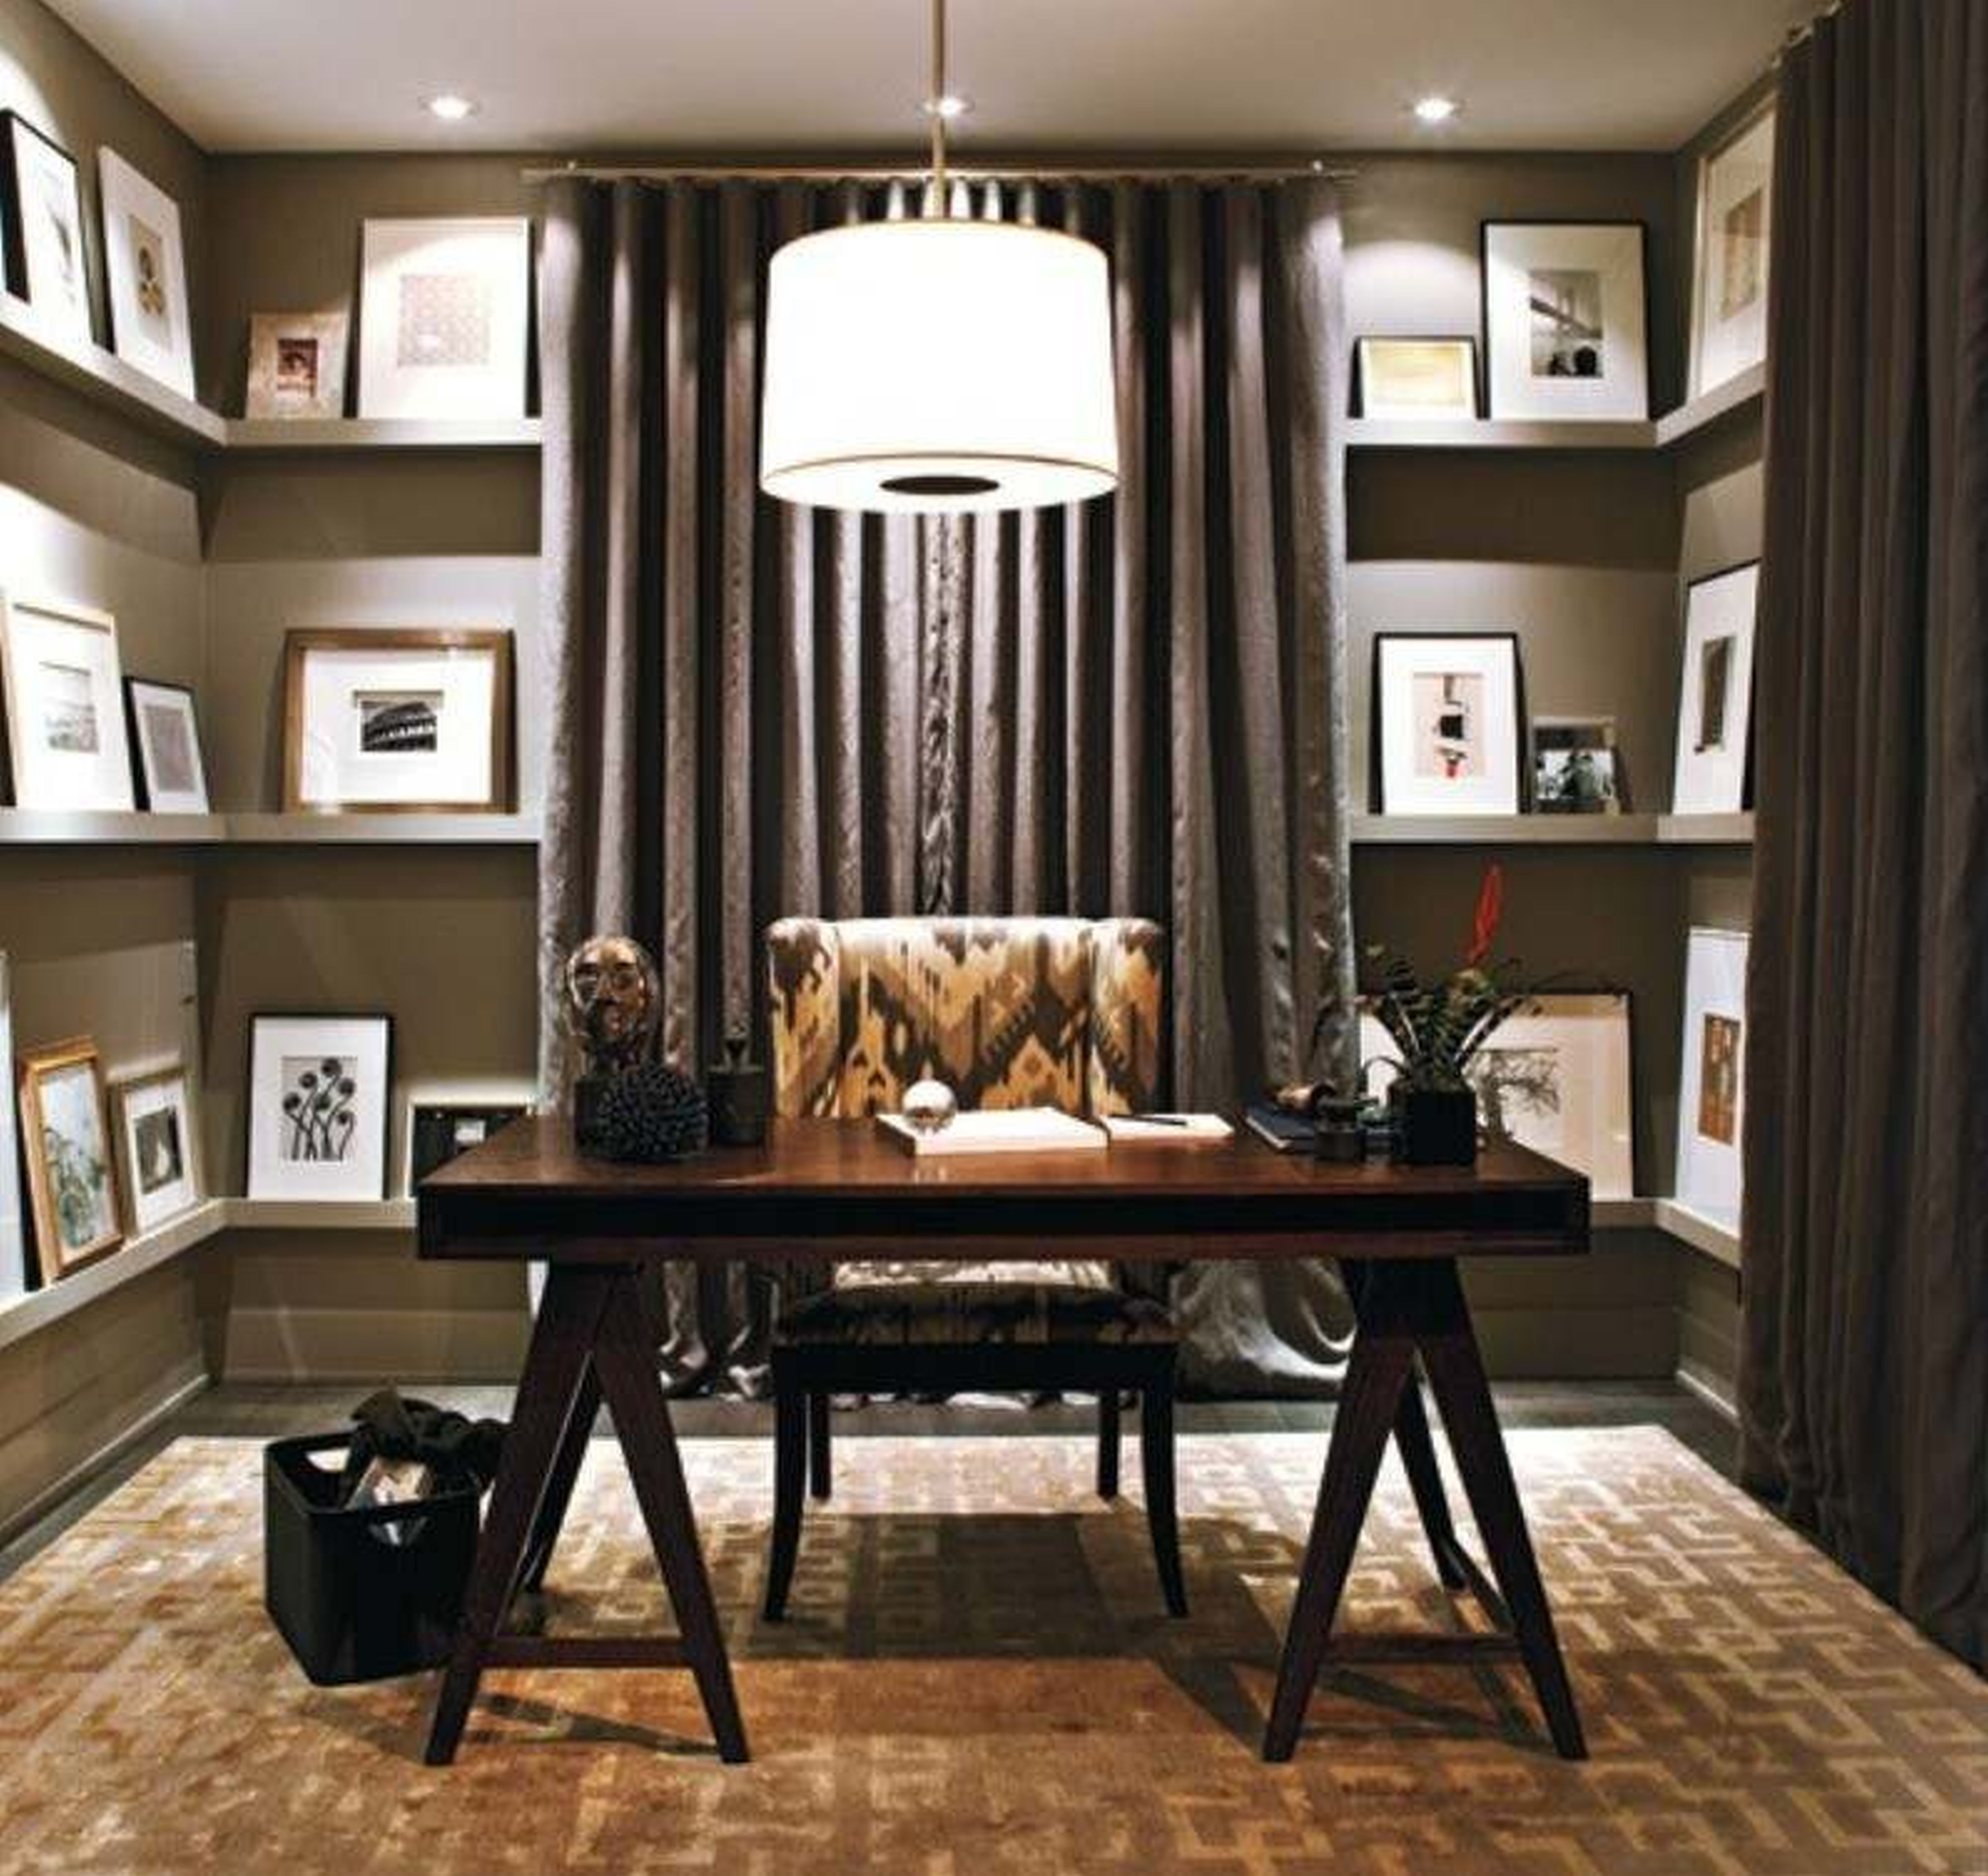 office-interior-adorable-modern-home-office-decor-ideas-with-drum-shade-pendant-lamps-alsu-u-shape-cabinets-ideas